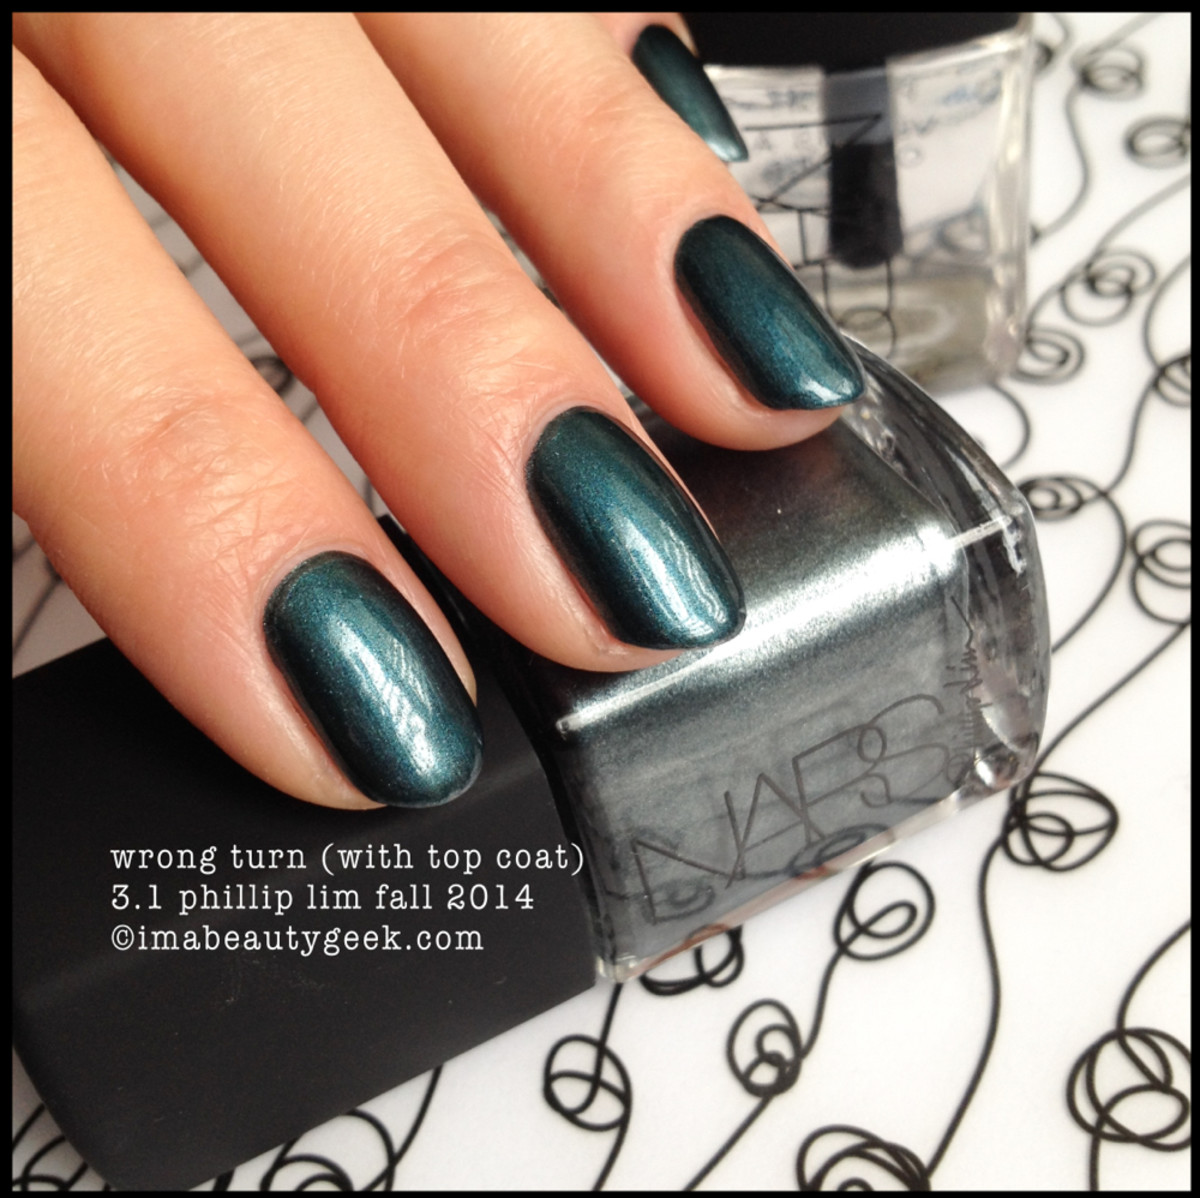 NARS Polish Wrong Turn w TopCoat Phillip Lim Fall 2014